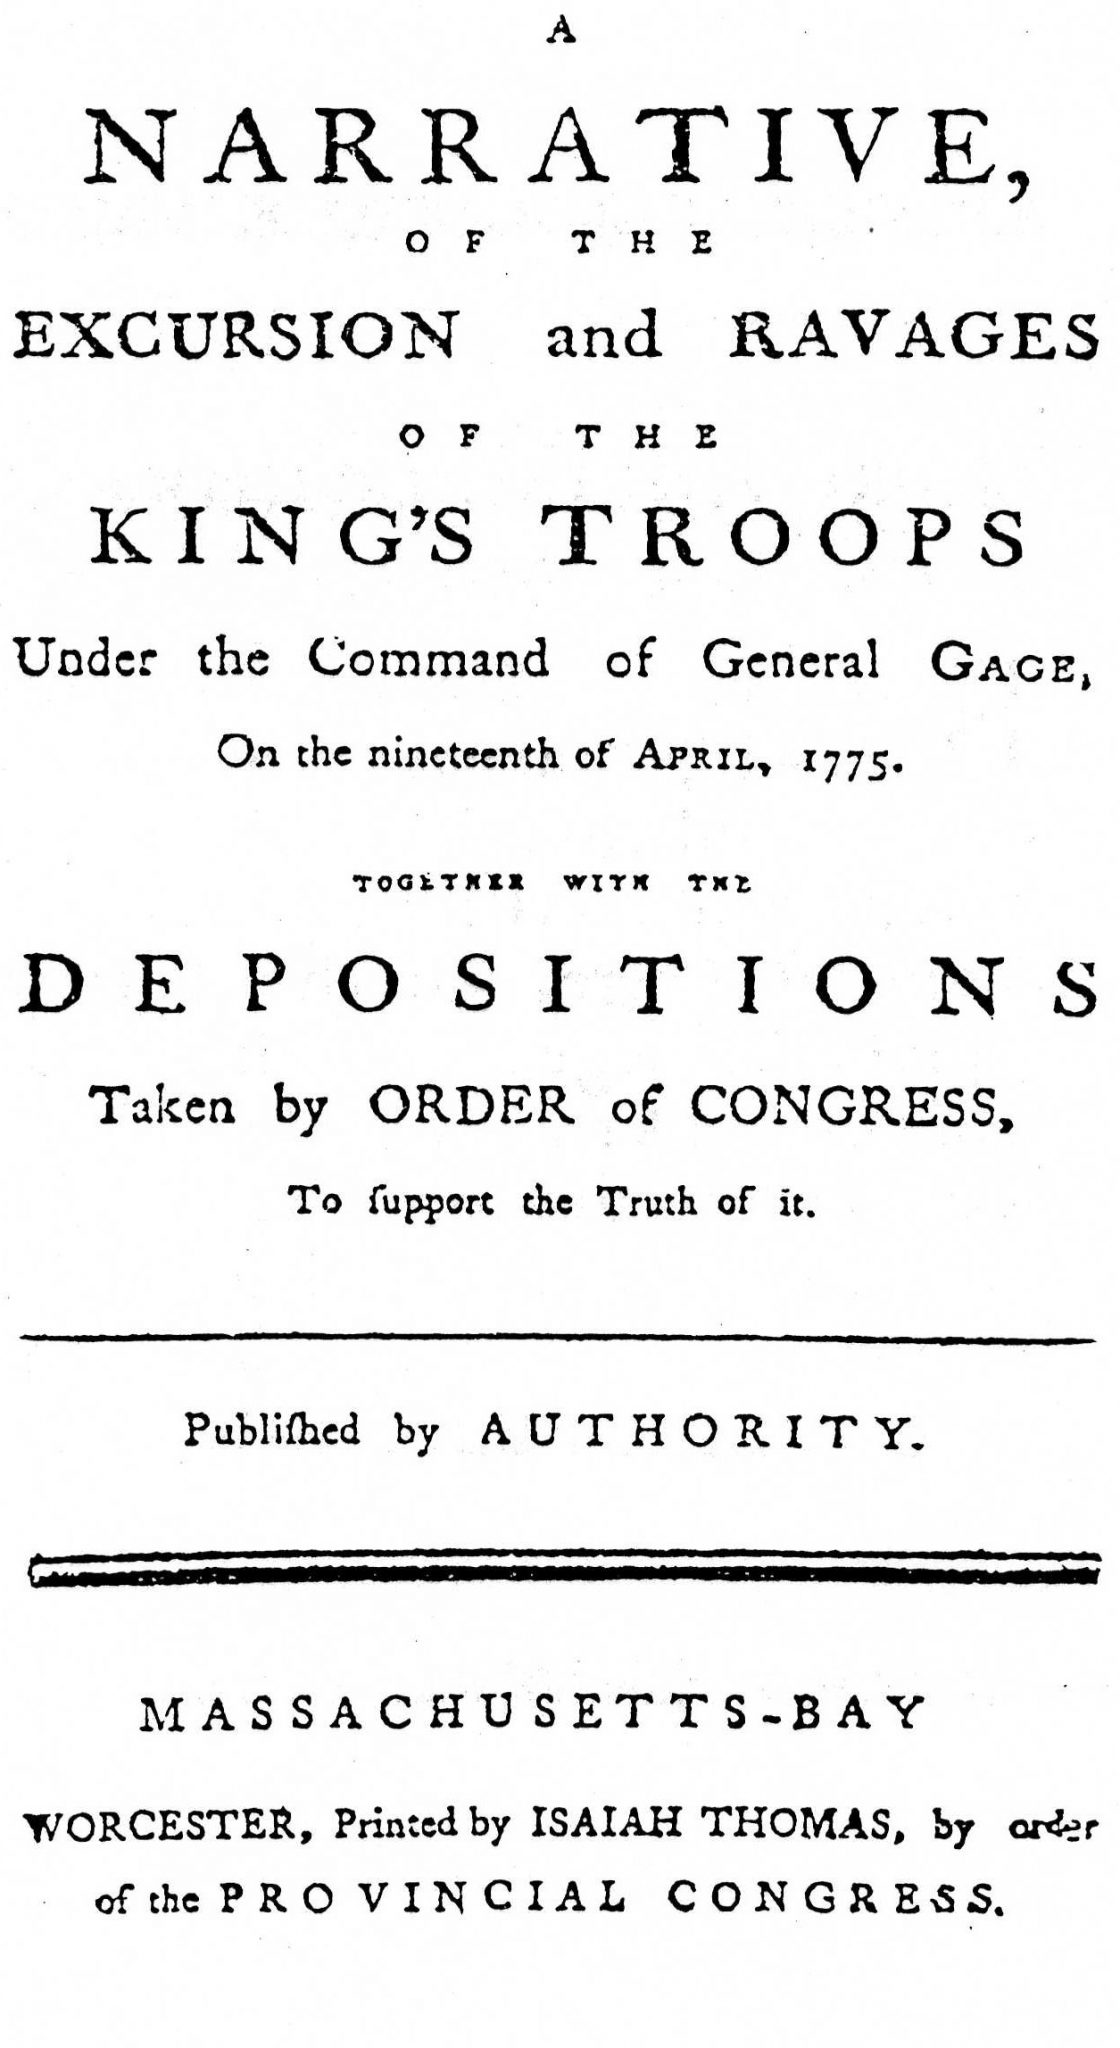 A Narrative of the Excursion and Ravages of the King's Troops